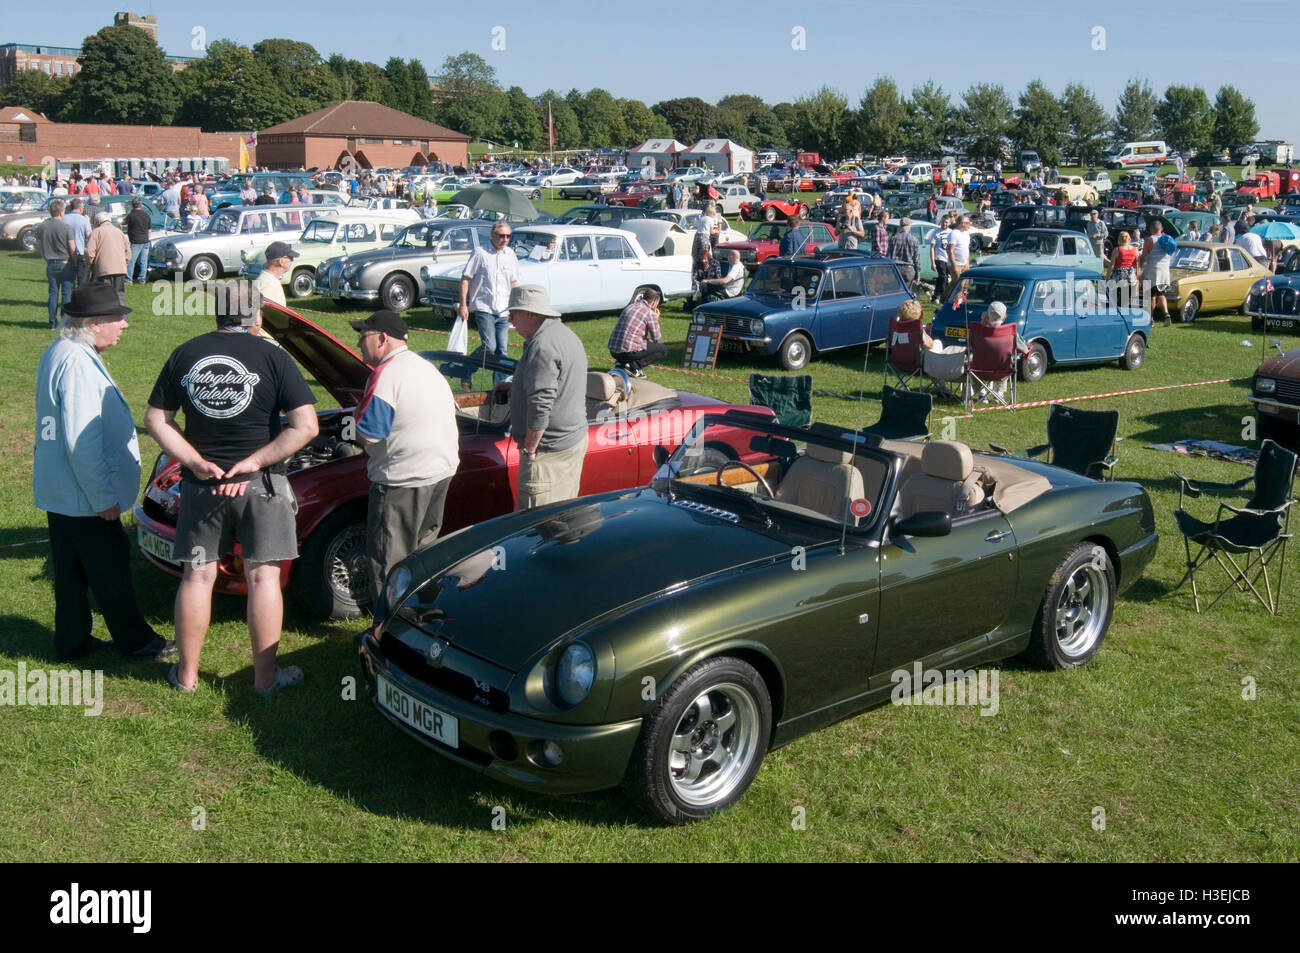 MG RV8 sports cars at classic car show - Stock Image